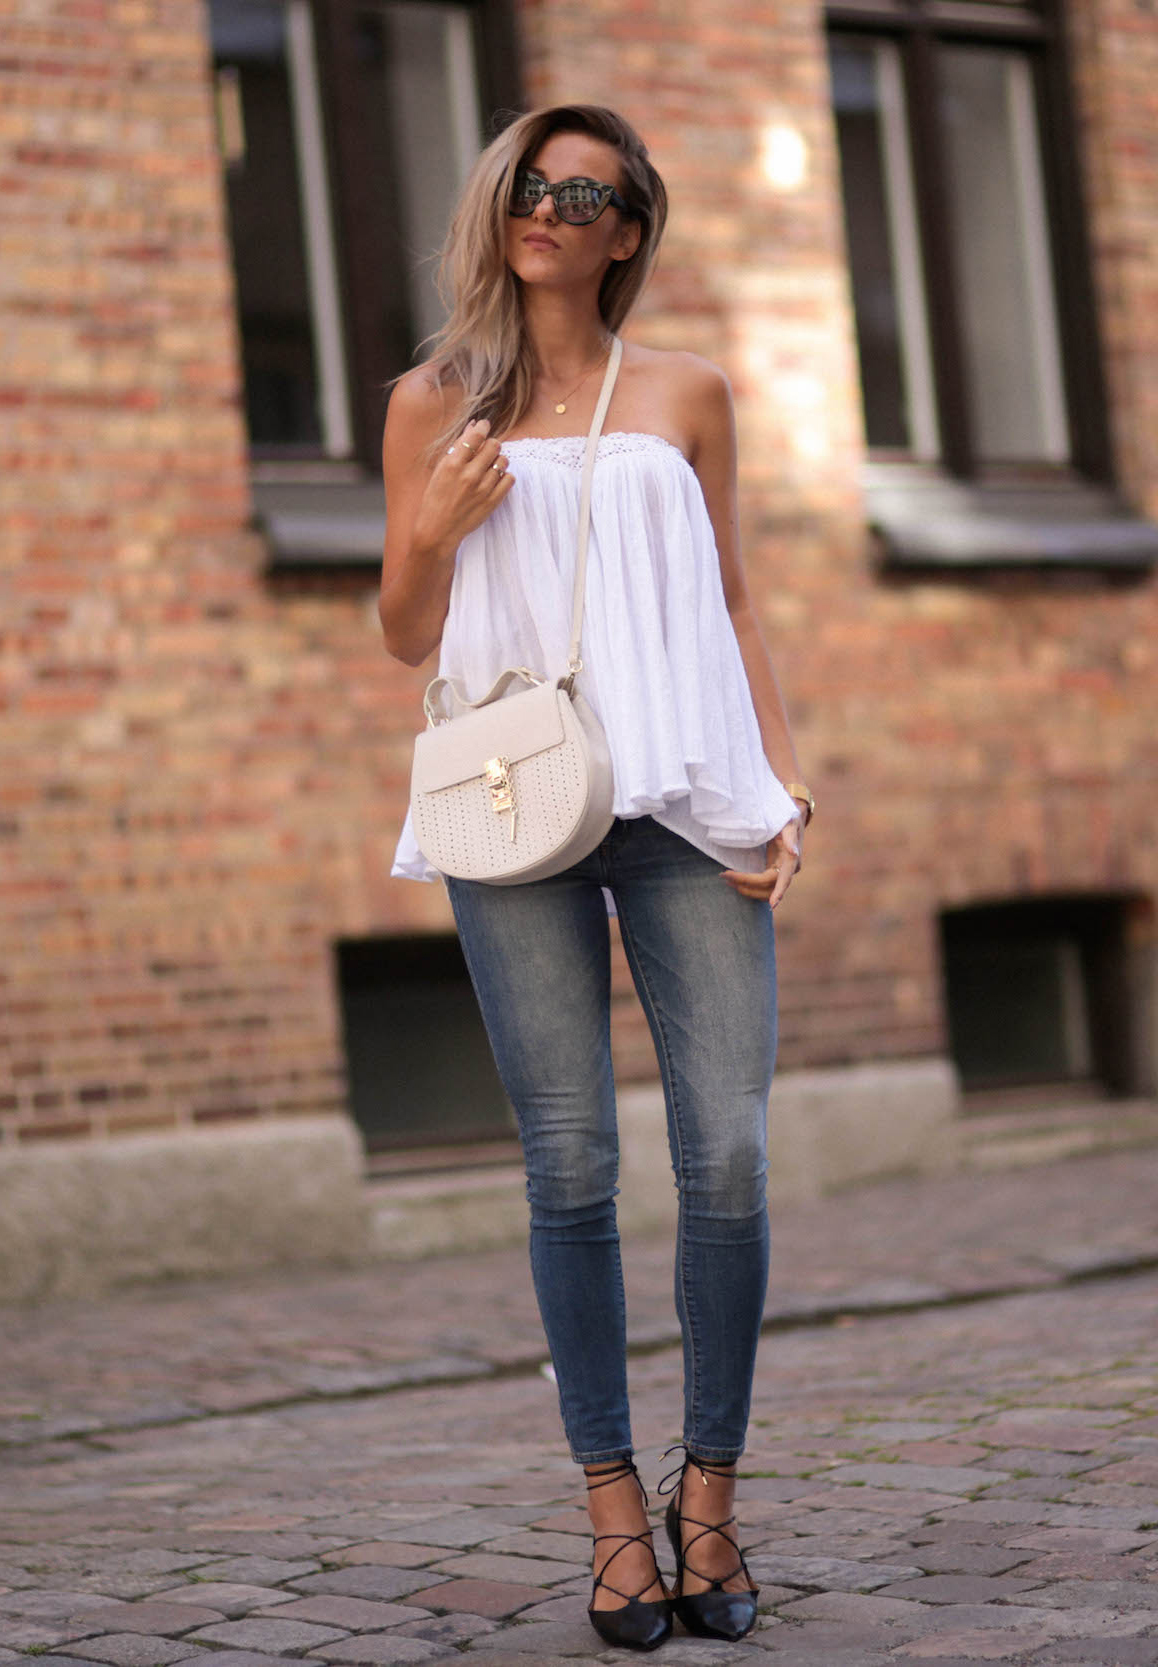 A simple white blouse and skinny denim jeans can make the perfect every day summer outfit. Sendi Skopljak wears this pretty and casual outfit with strappy sandals and stylish shades. Top: Make way, Bag: Chiquelle, Shoes: Topshop, Watch: Larsson & Jennings.